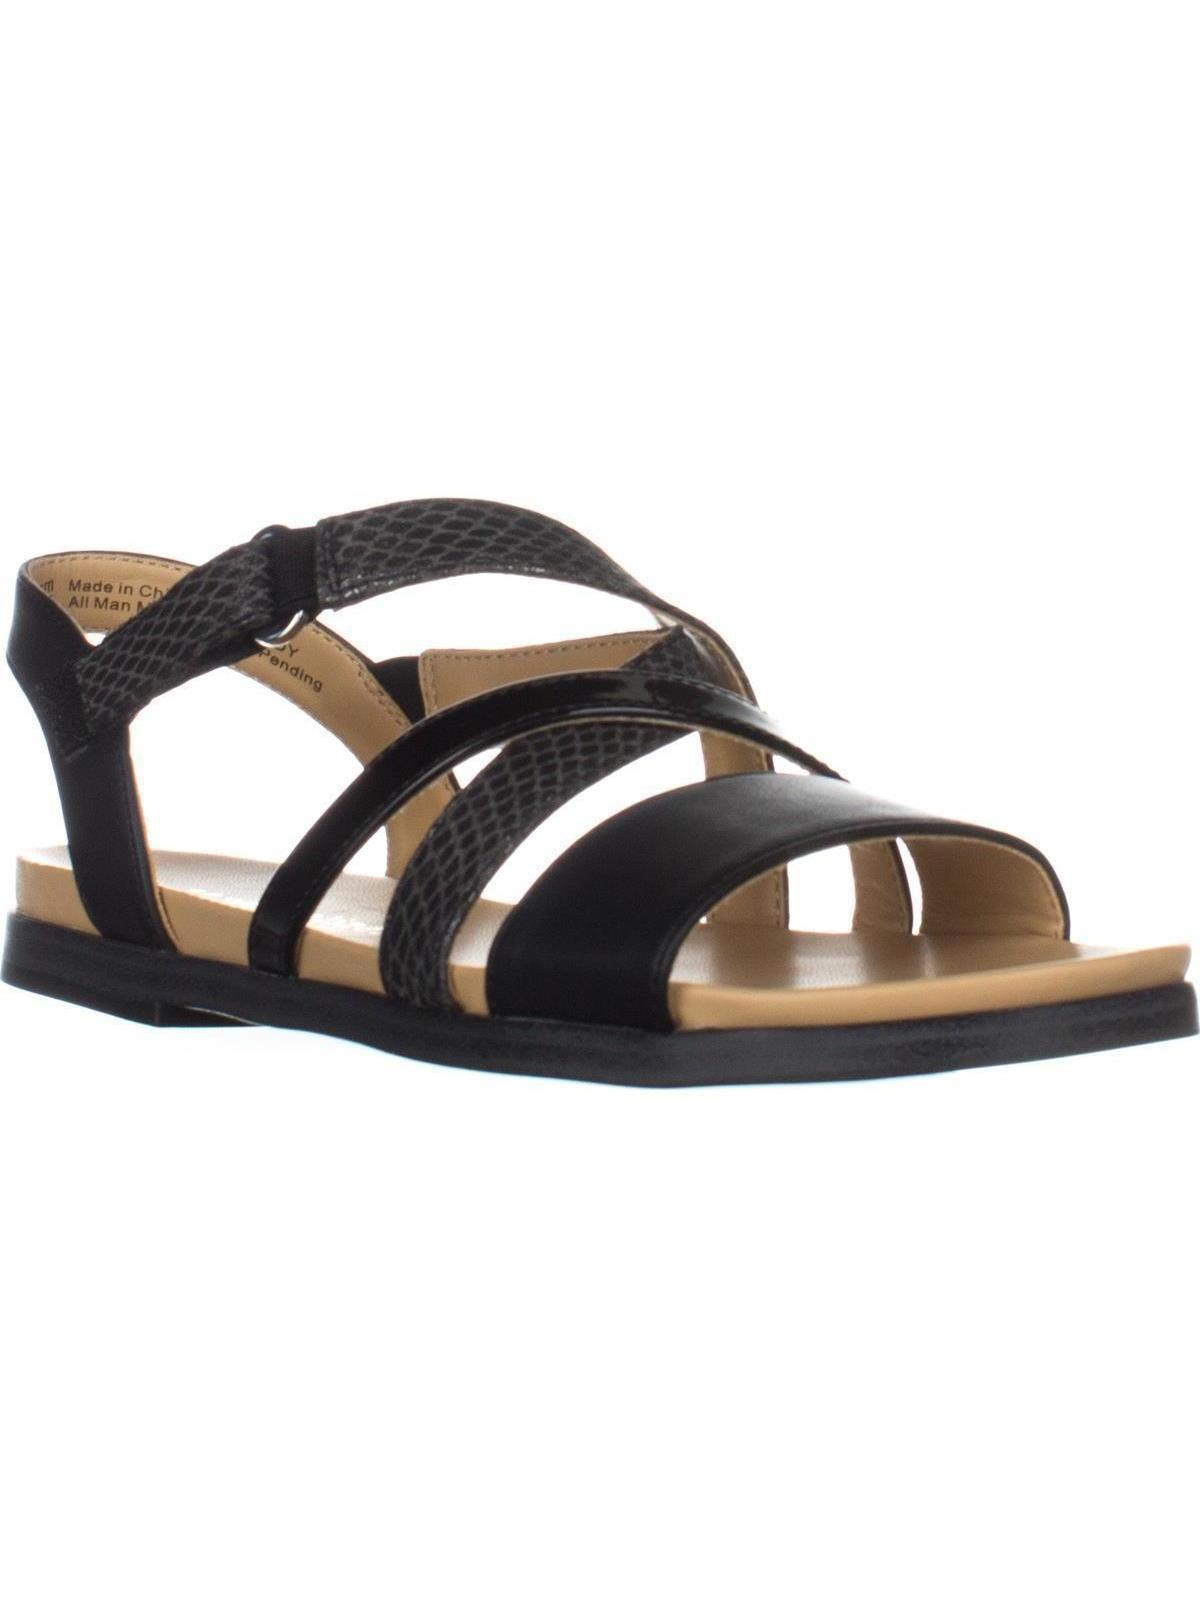 Womens Naturalizer Kandy Flat Strappy Sandals, Beige by Naturalizer